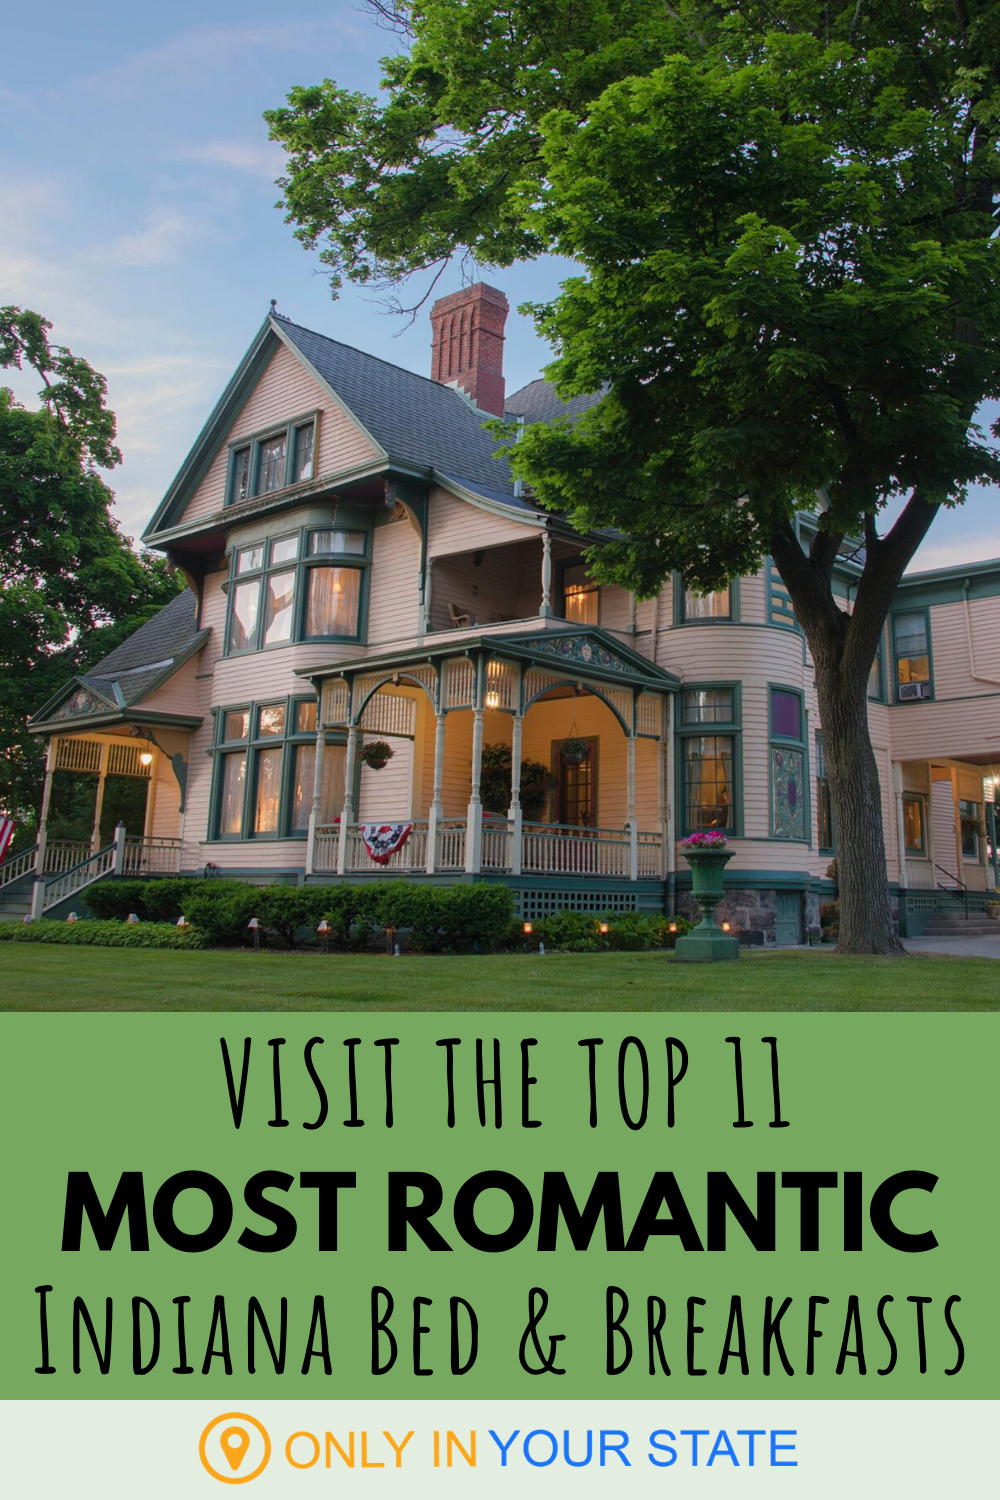 11 Indiana Bed And Breakfasts That Make For The Most